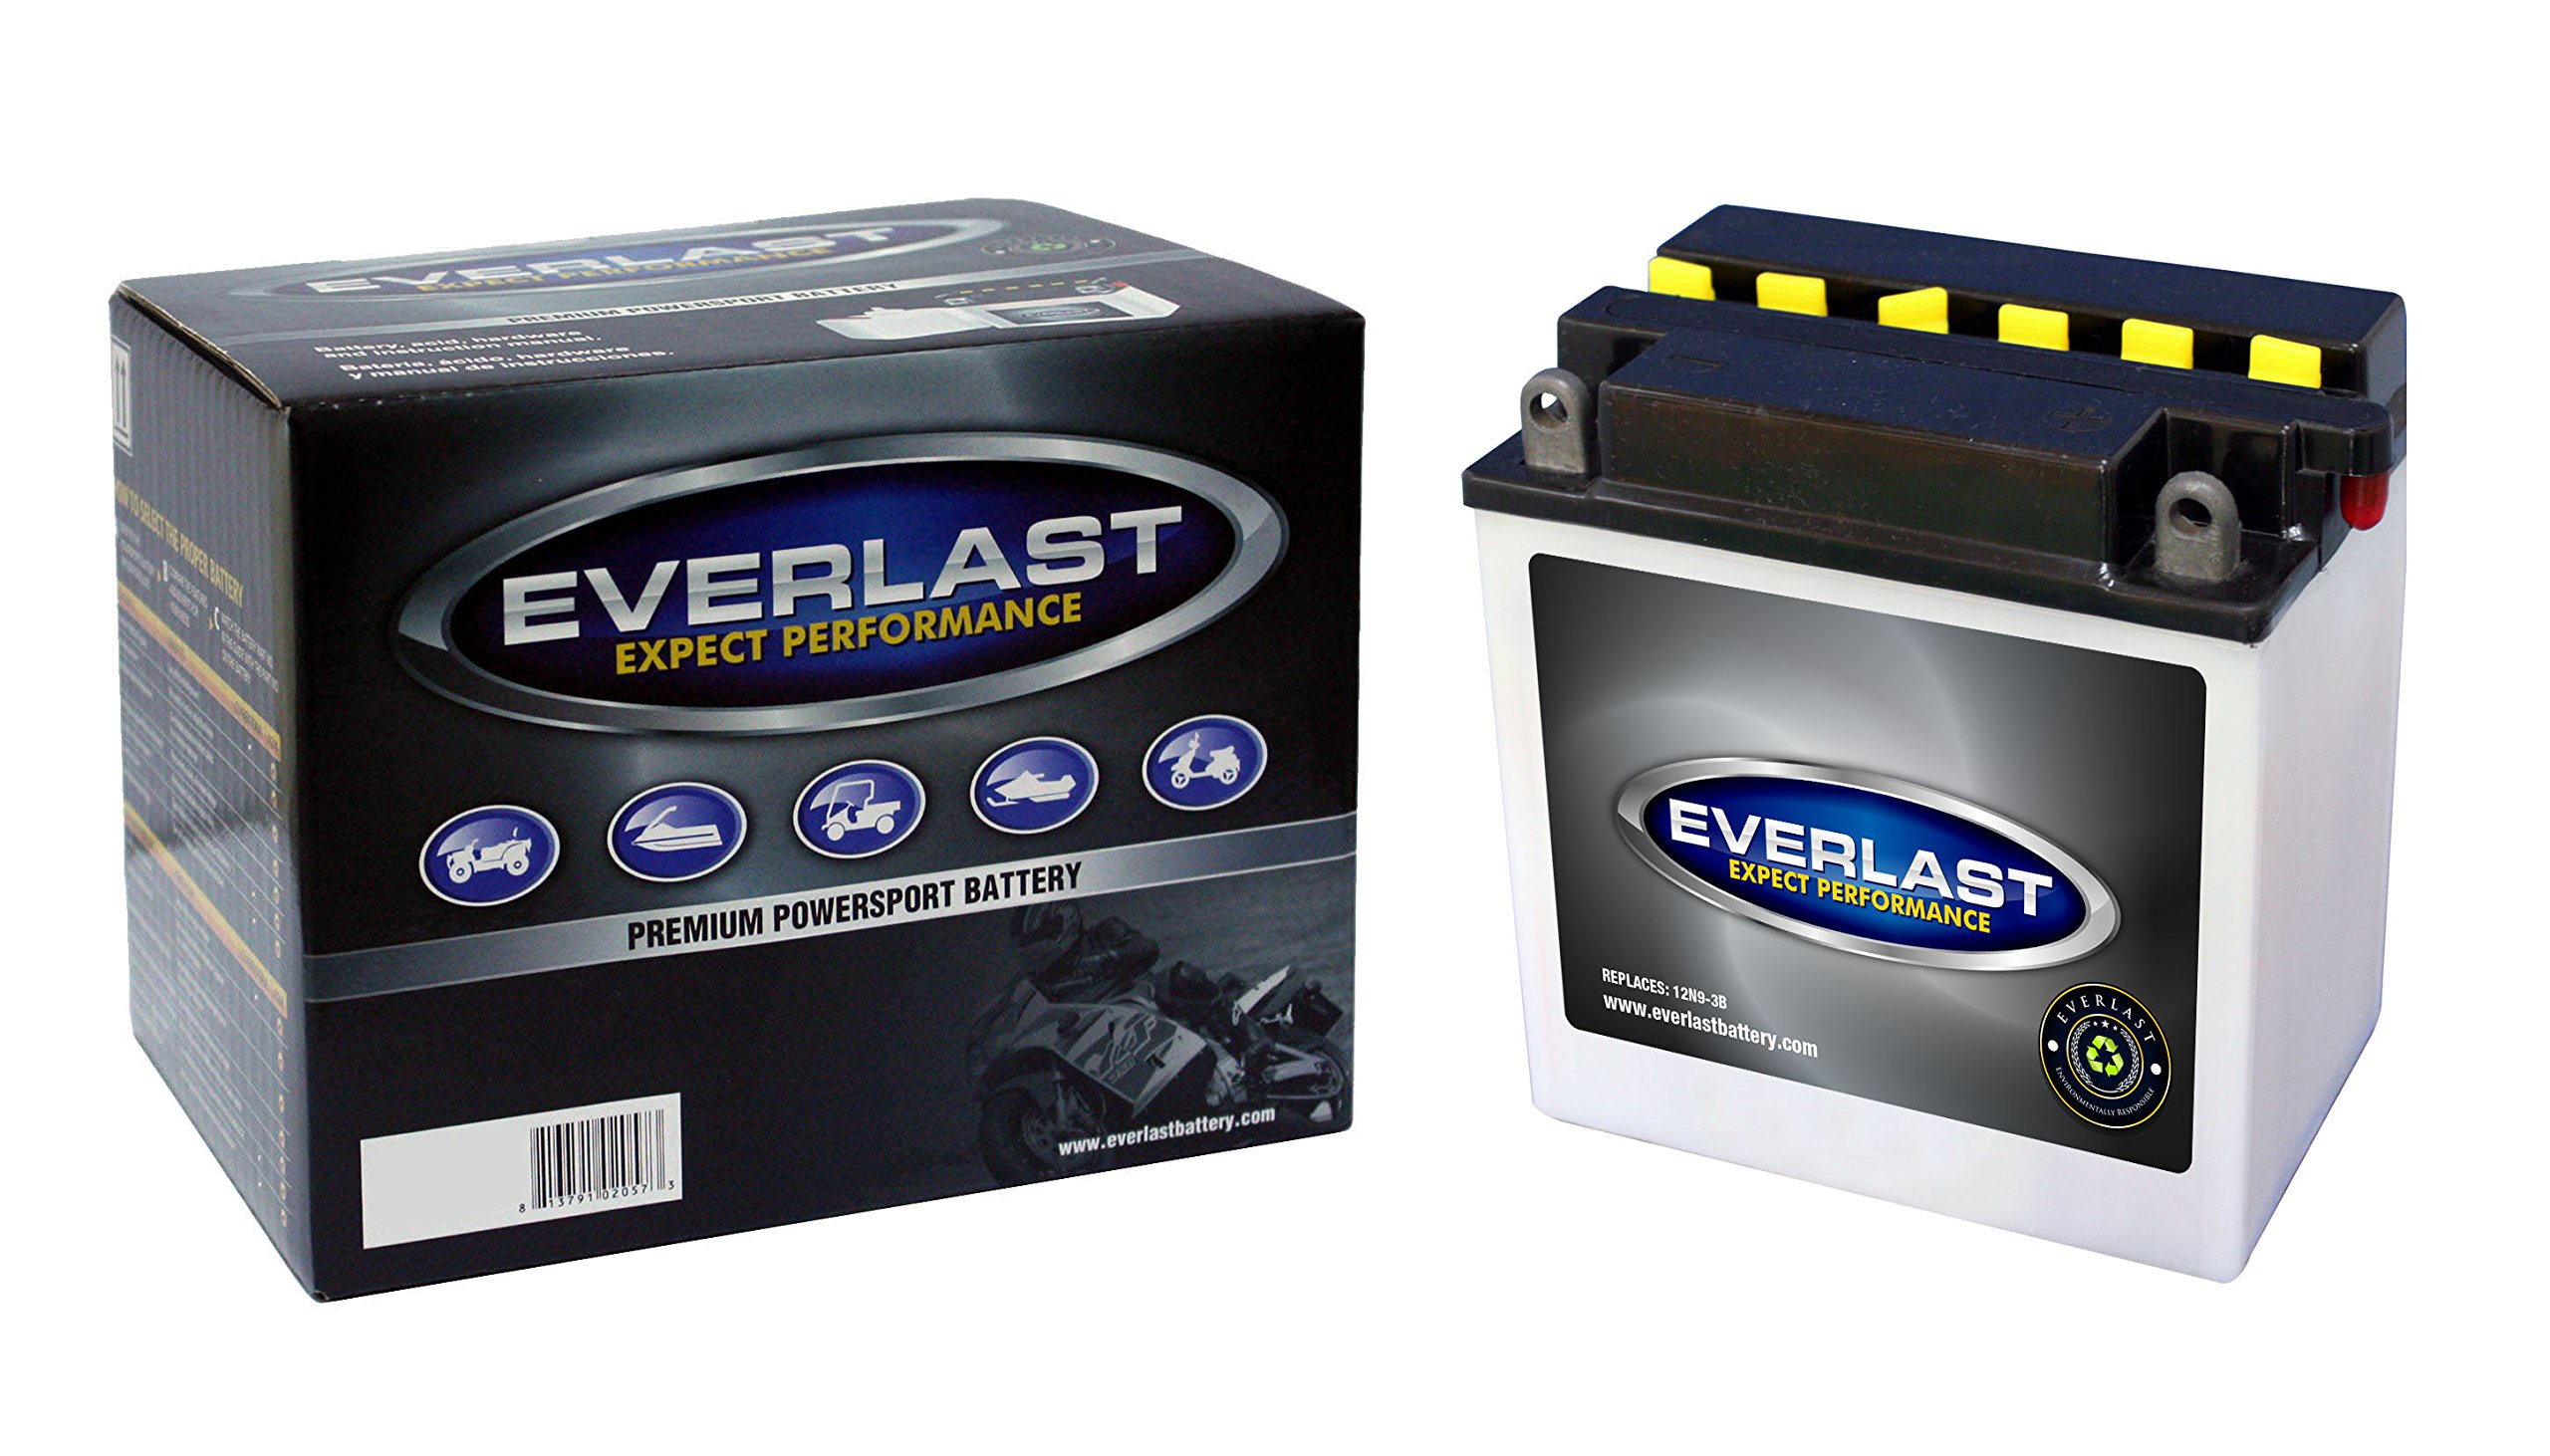 EverLast Battery - 12N9-3B - 12 Volt, Conventional Battery with Acid Pack -5 3/8 L X 3 W X 5 7/16 H